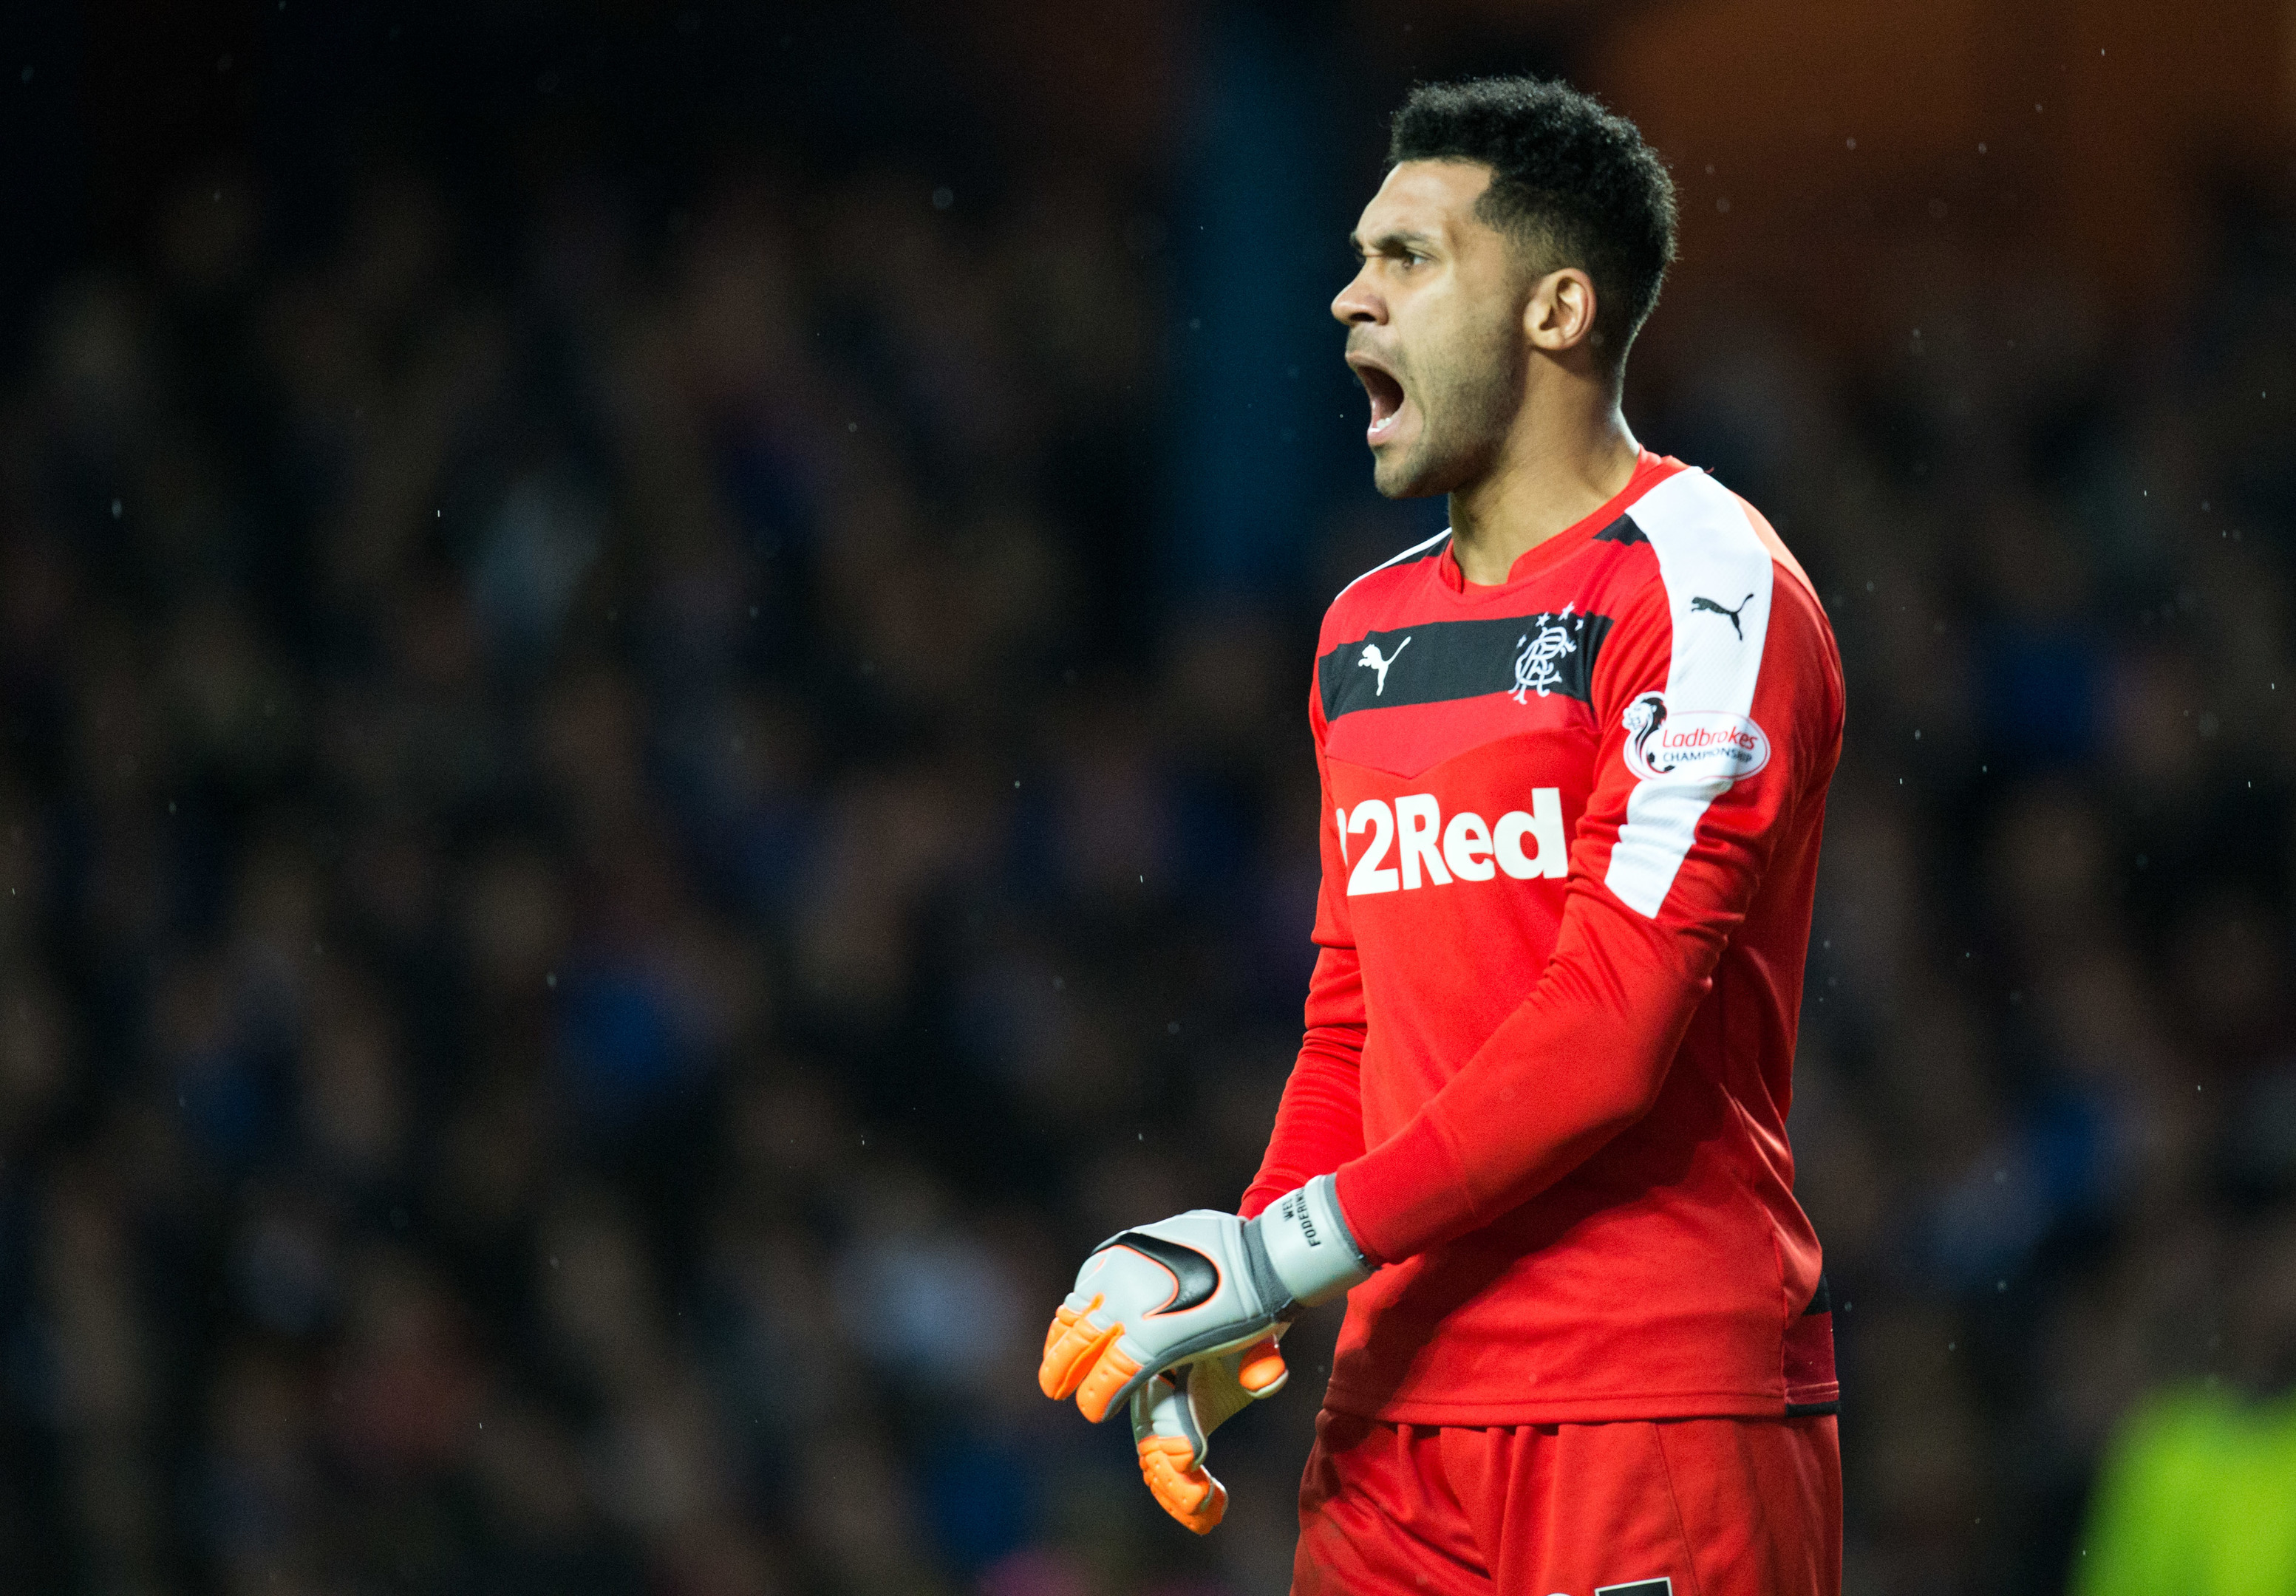 Wes Foderingham in action for Rangers (SNS Group)